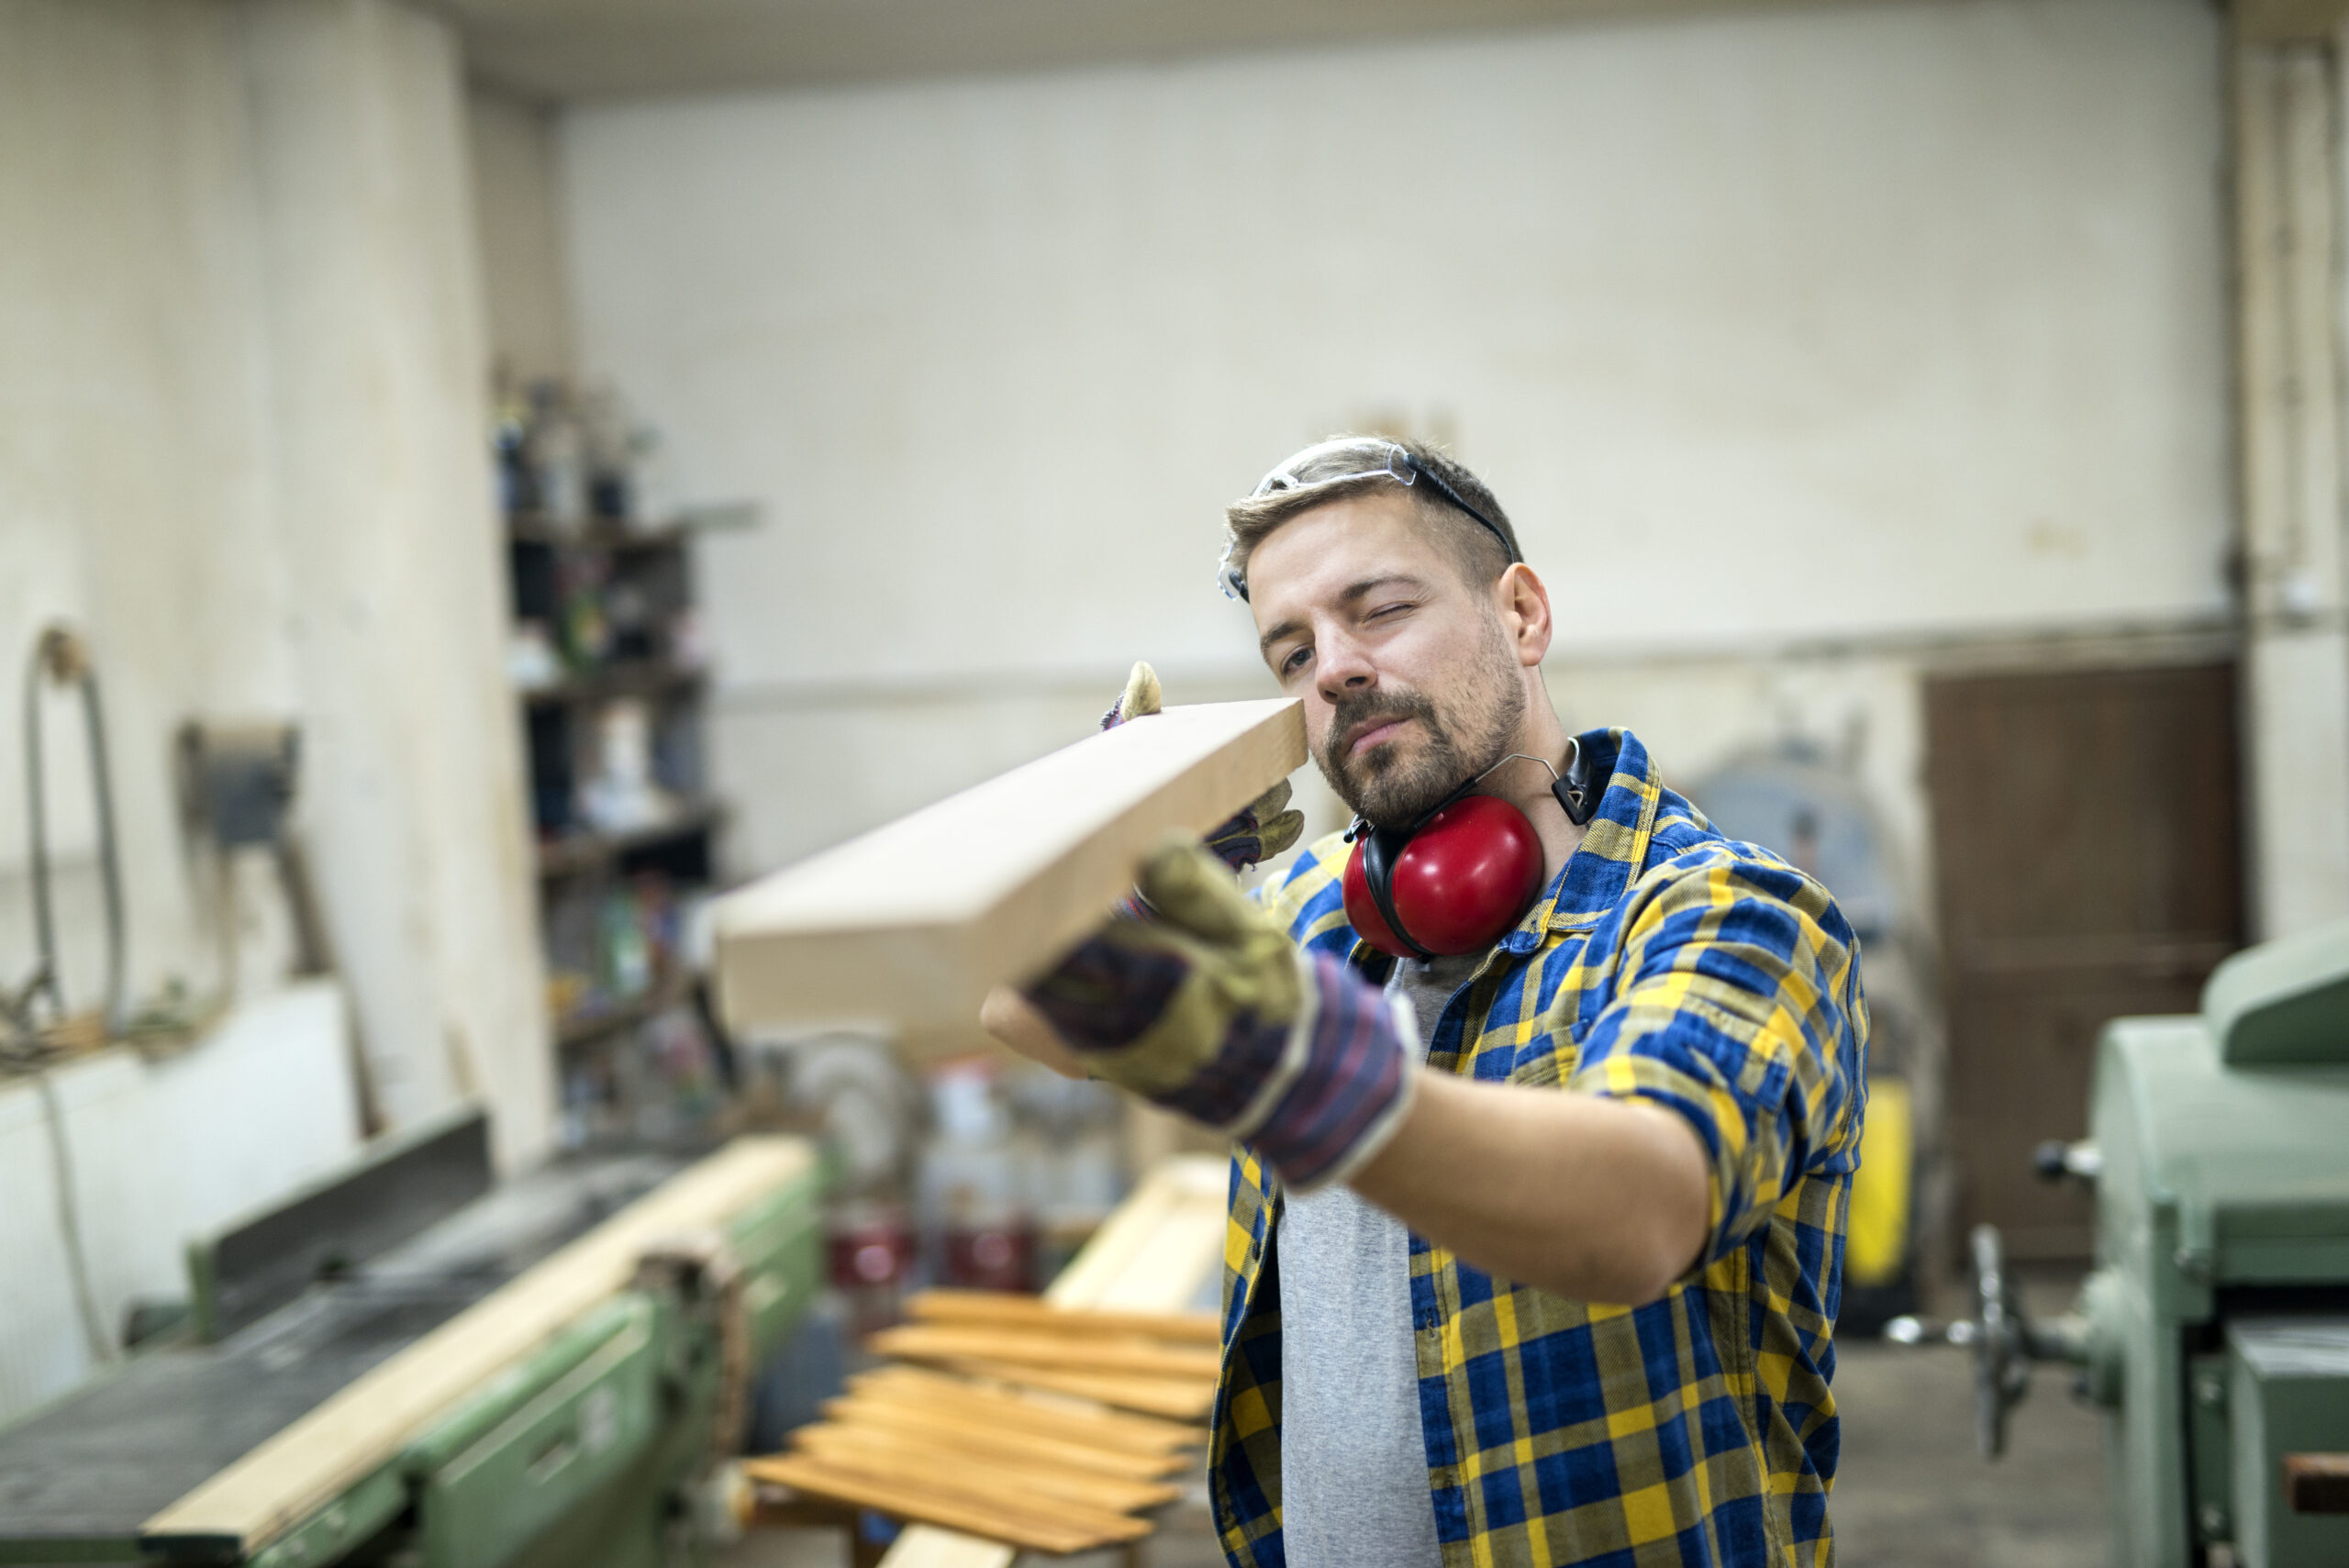 Carpenter checking quality of wood furniture part.